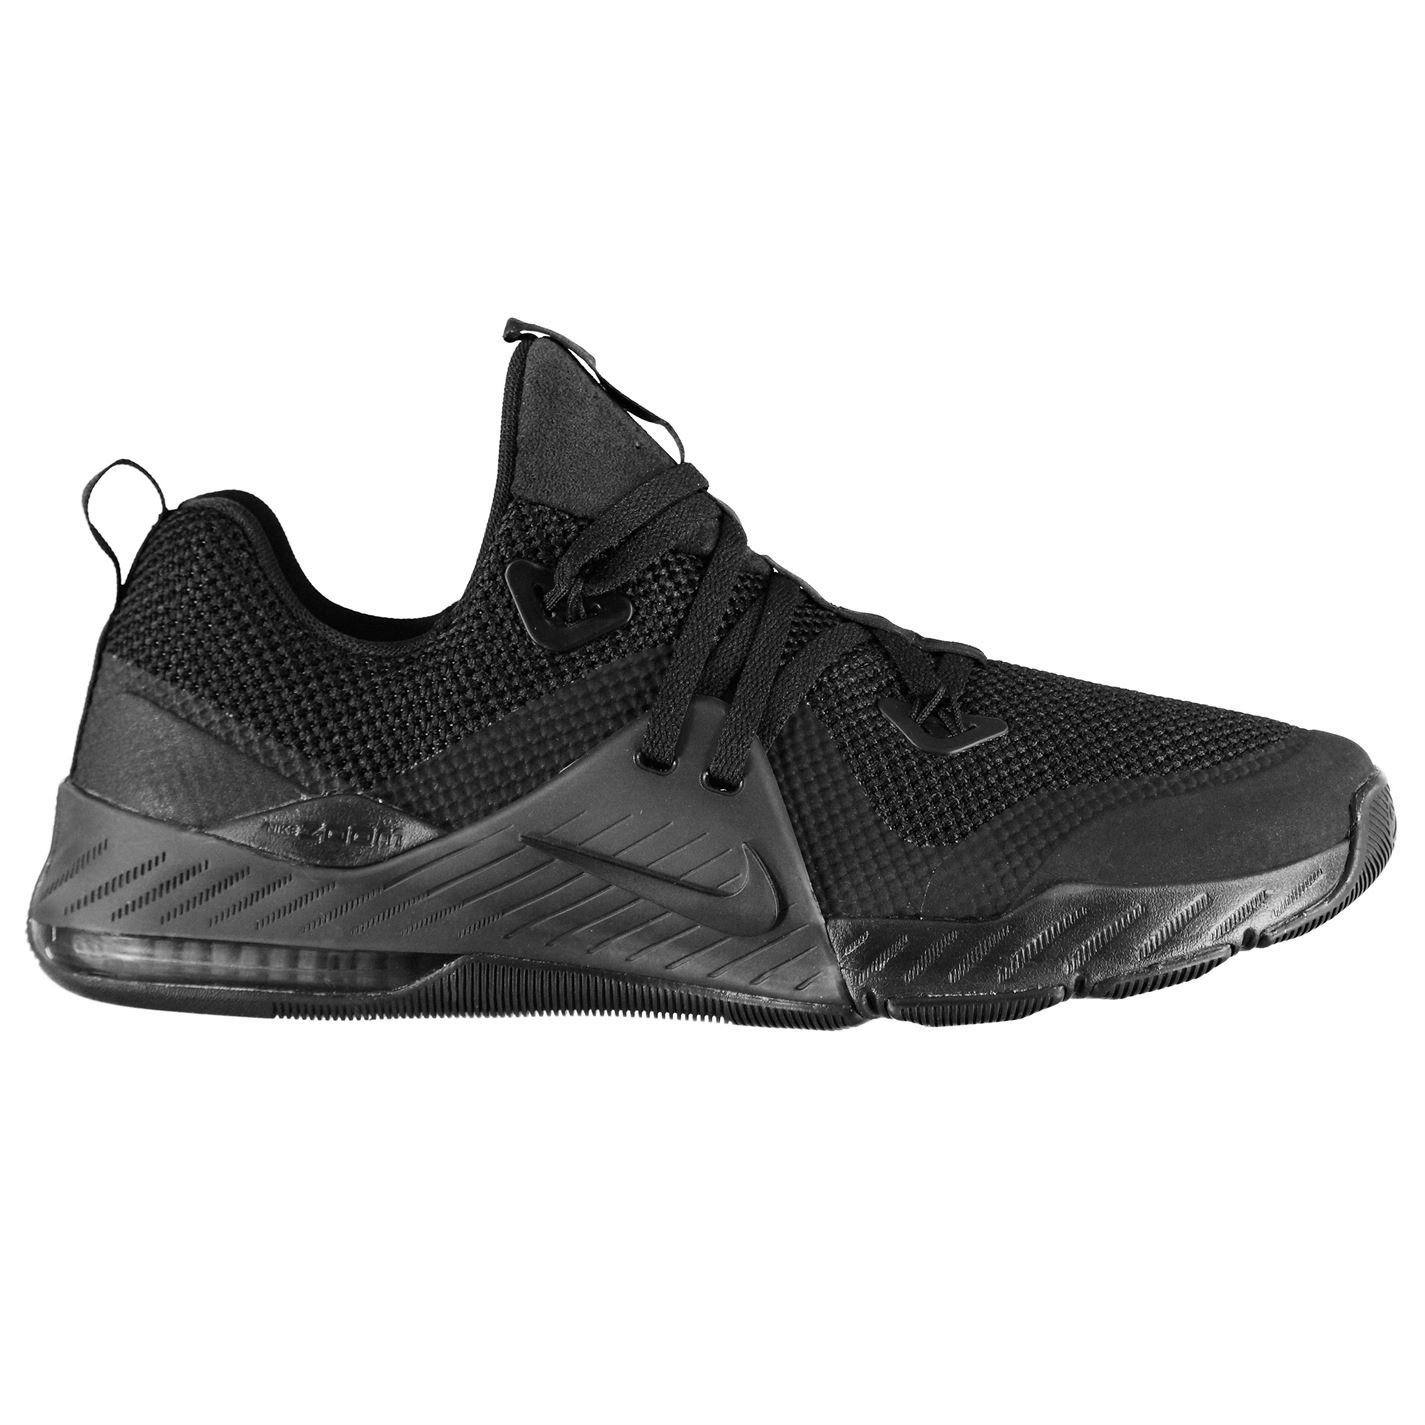 3c158c245a73d Details about Nike Zoom Train Command Training Shoes Mens Black Gym Fitness  Trainers Sneakers